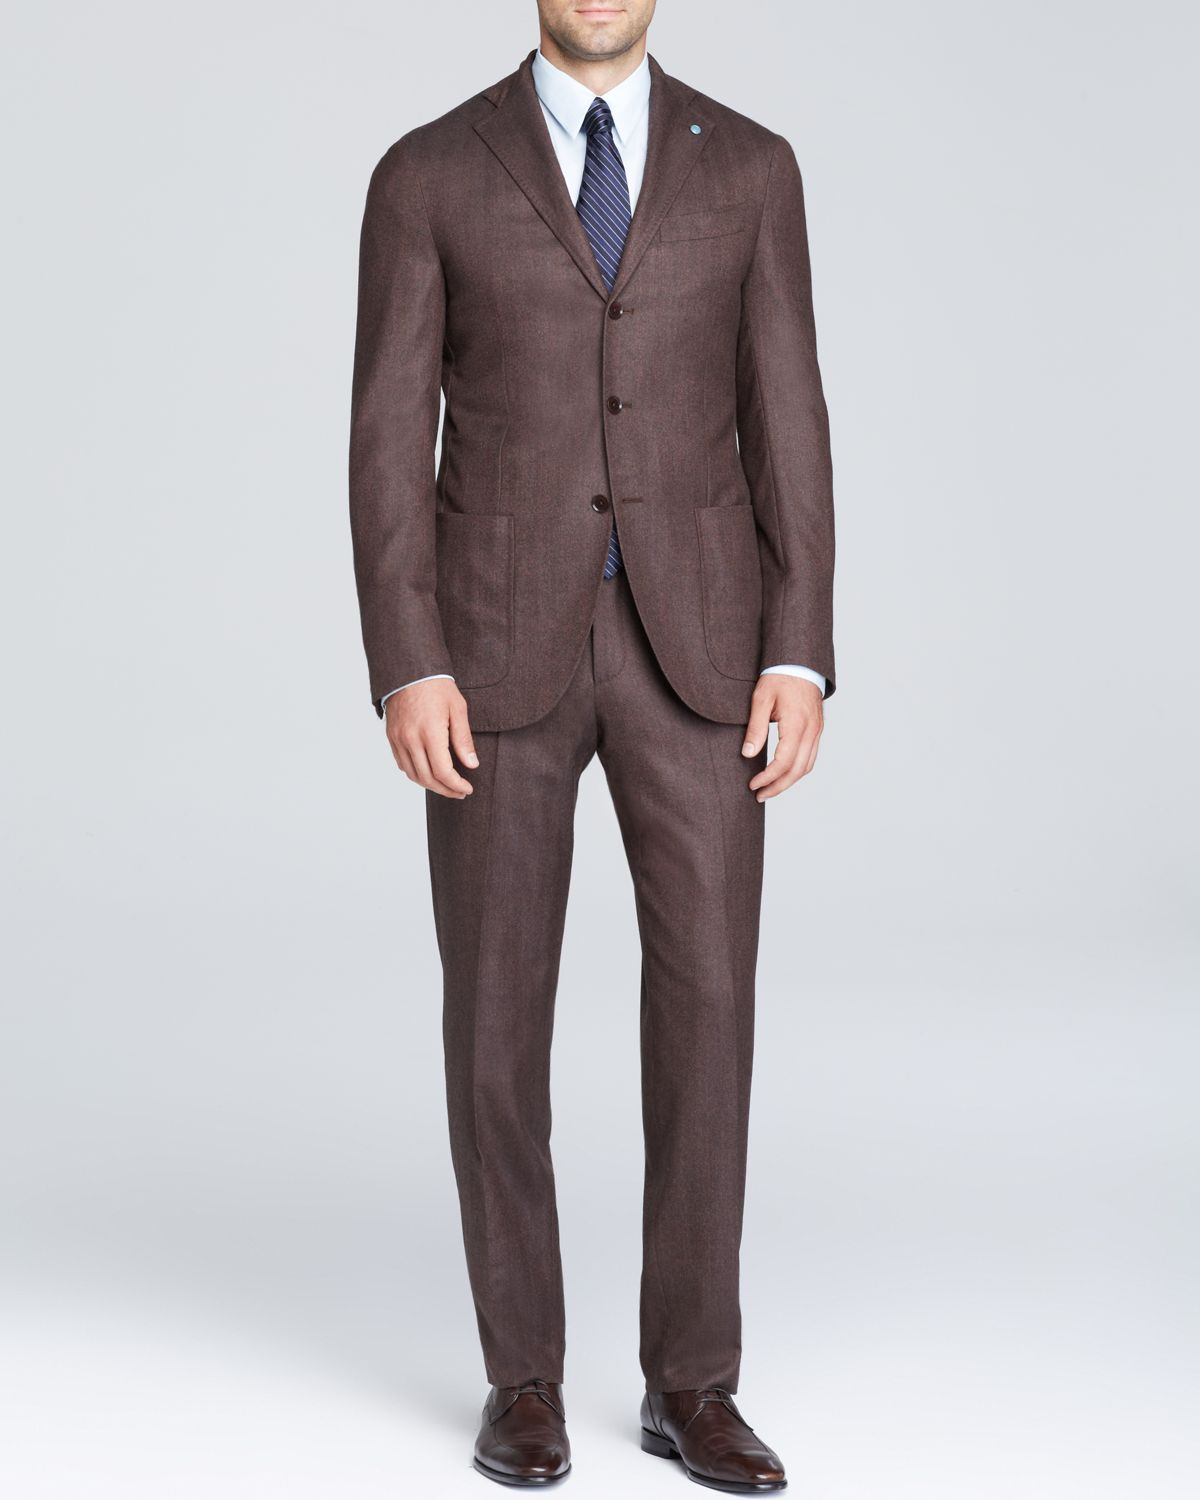 Eidos Herringbone Suit - Slim Fit - Bloomingdale'S Exclusive in ...